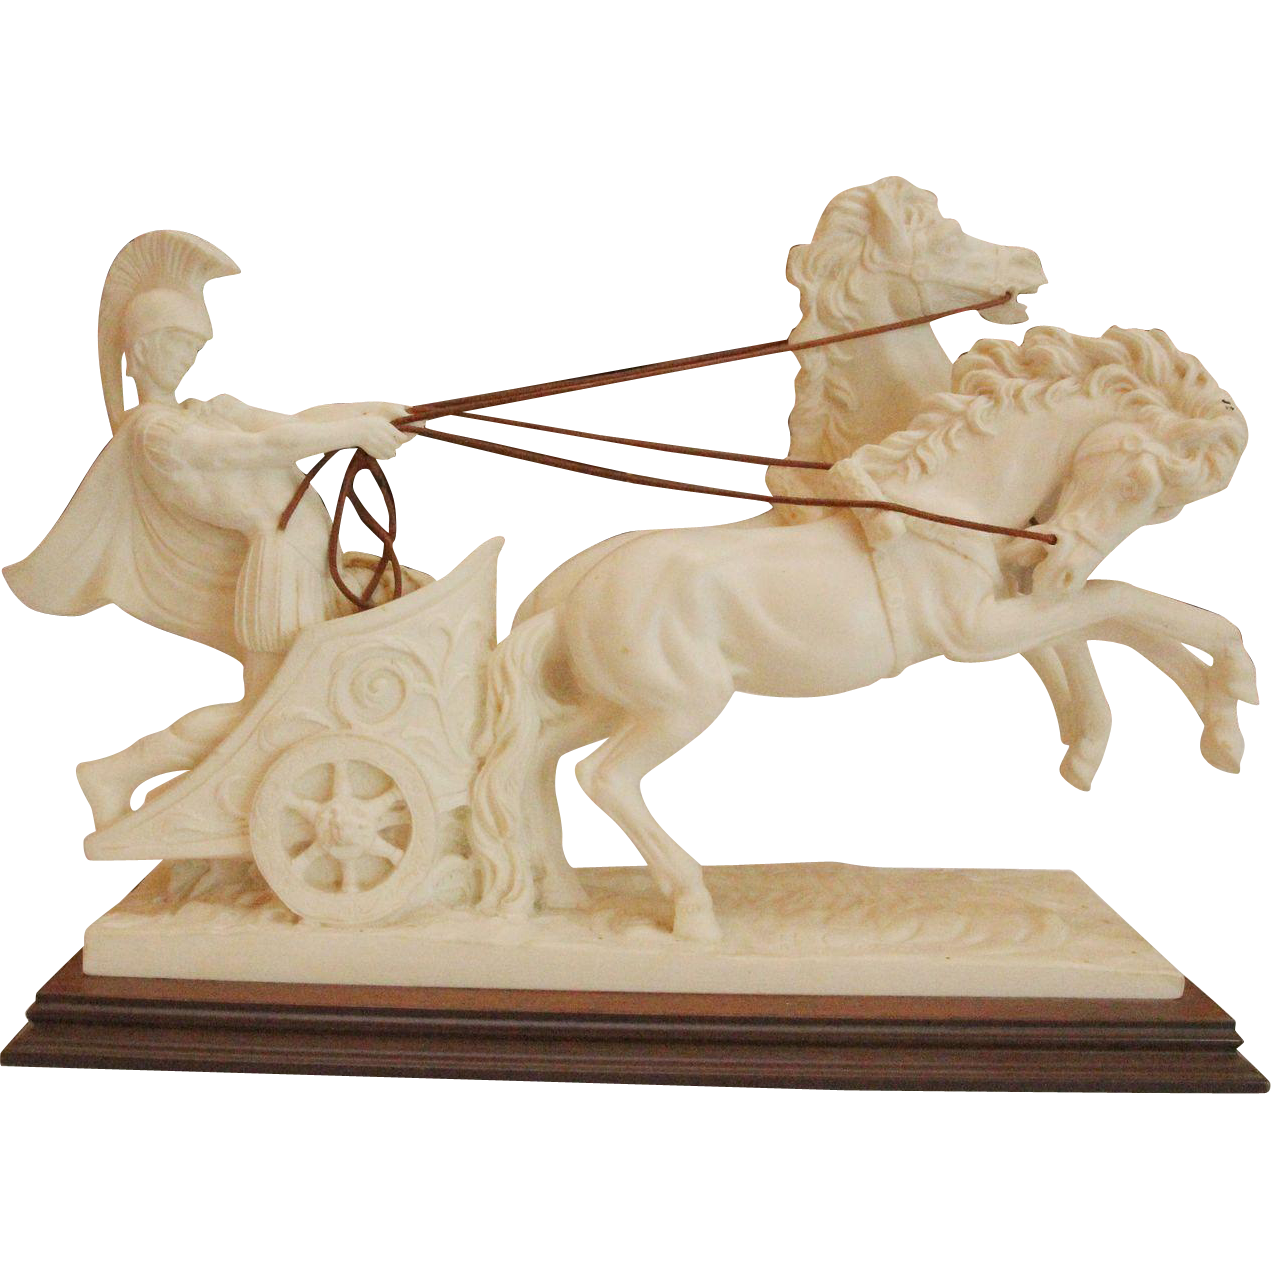 Statue of Roman warrior on horse chariot